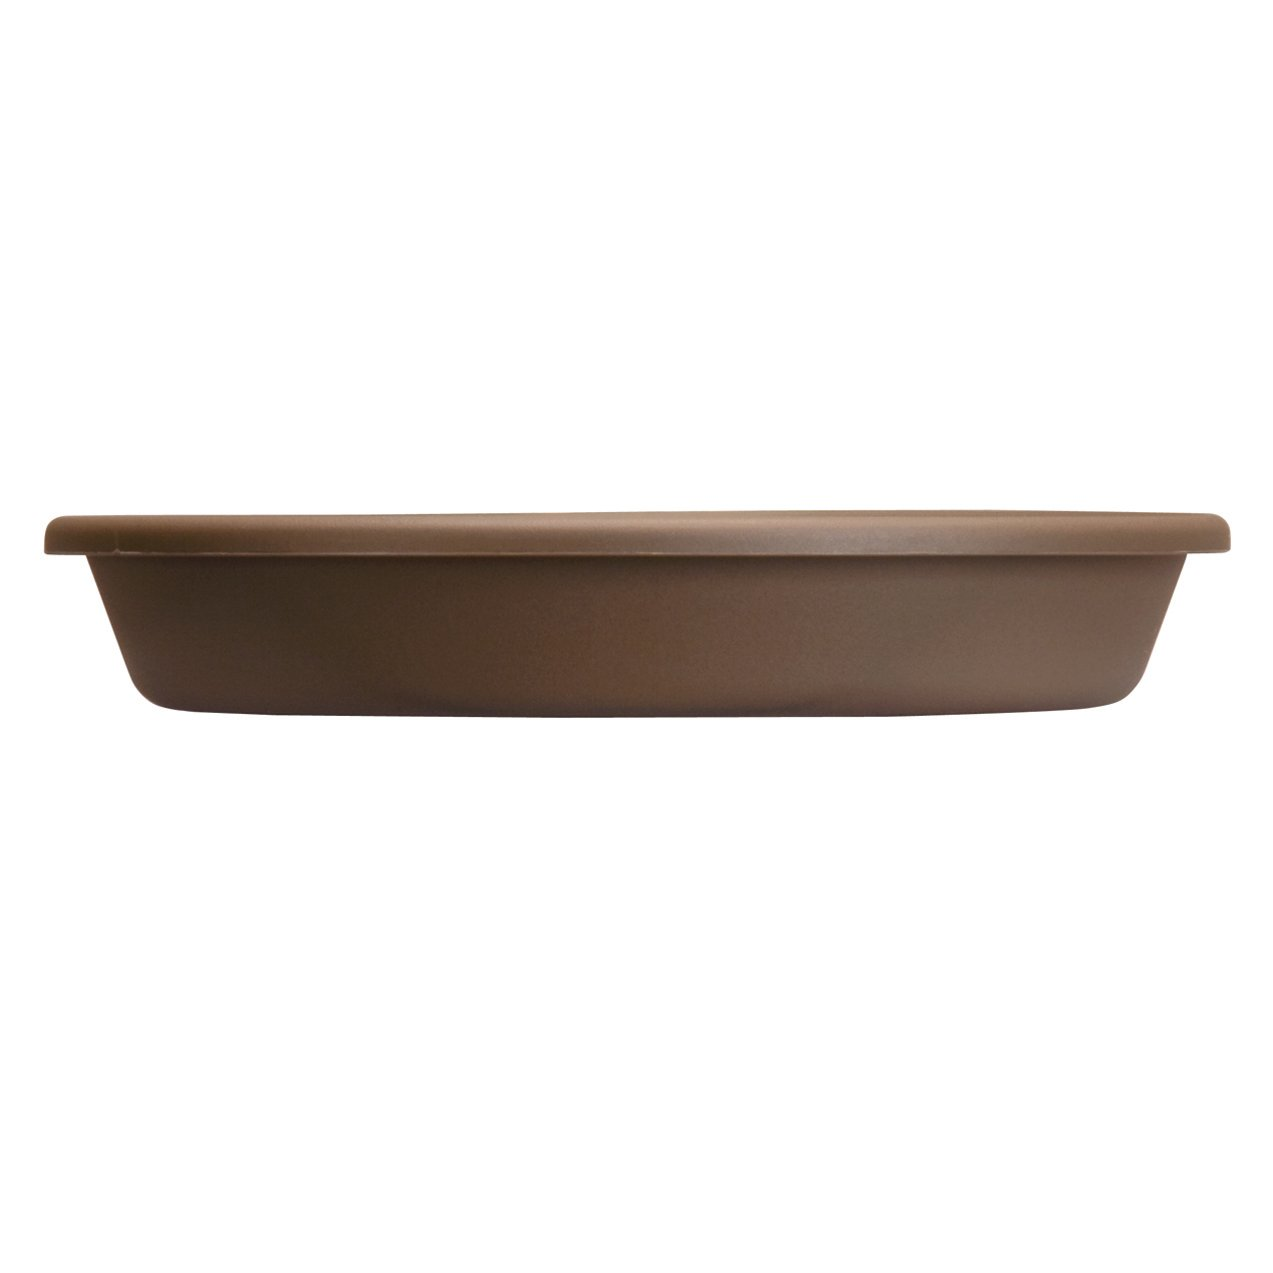 Akro-Mils SLI17000E21 Classic Saucer for 16-Inch Classic Pot, Chocolate, 16.13-Inch